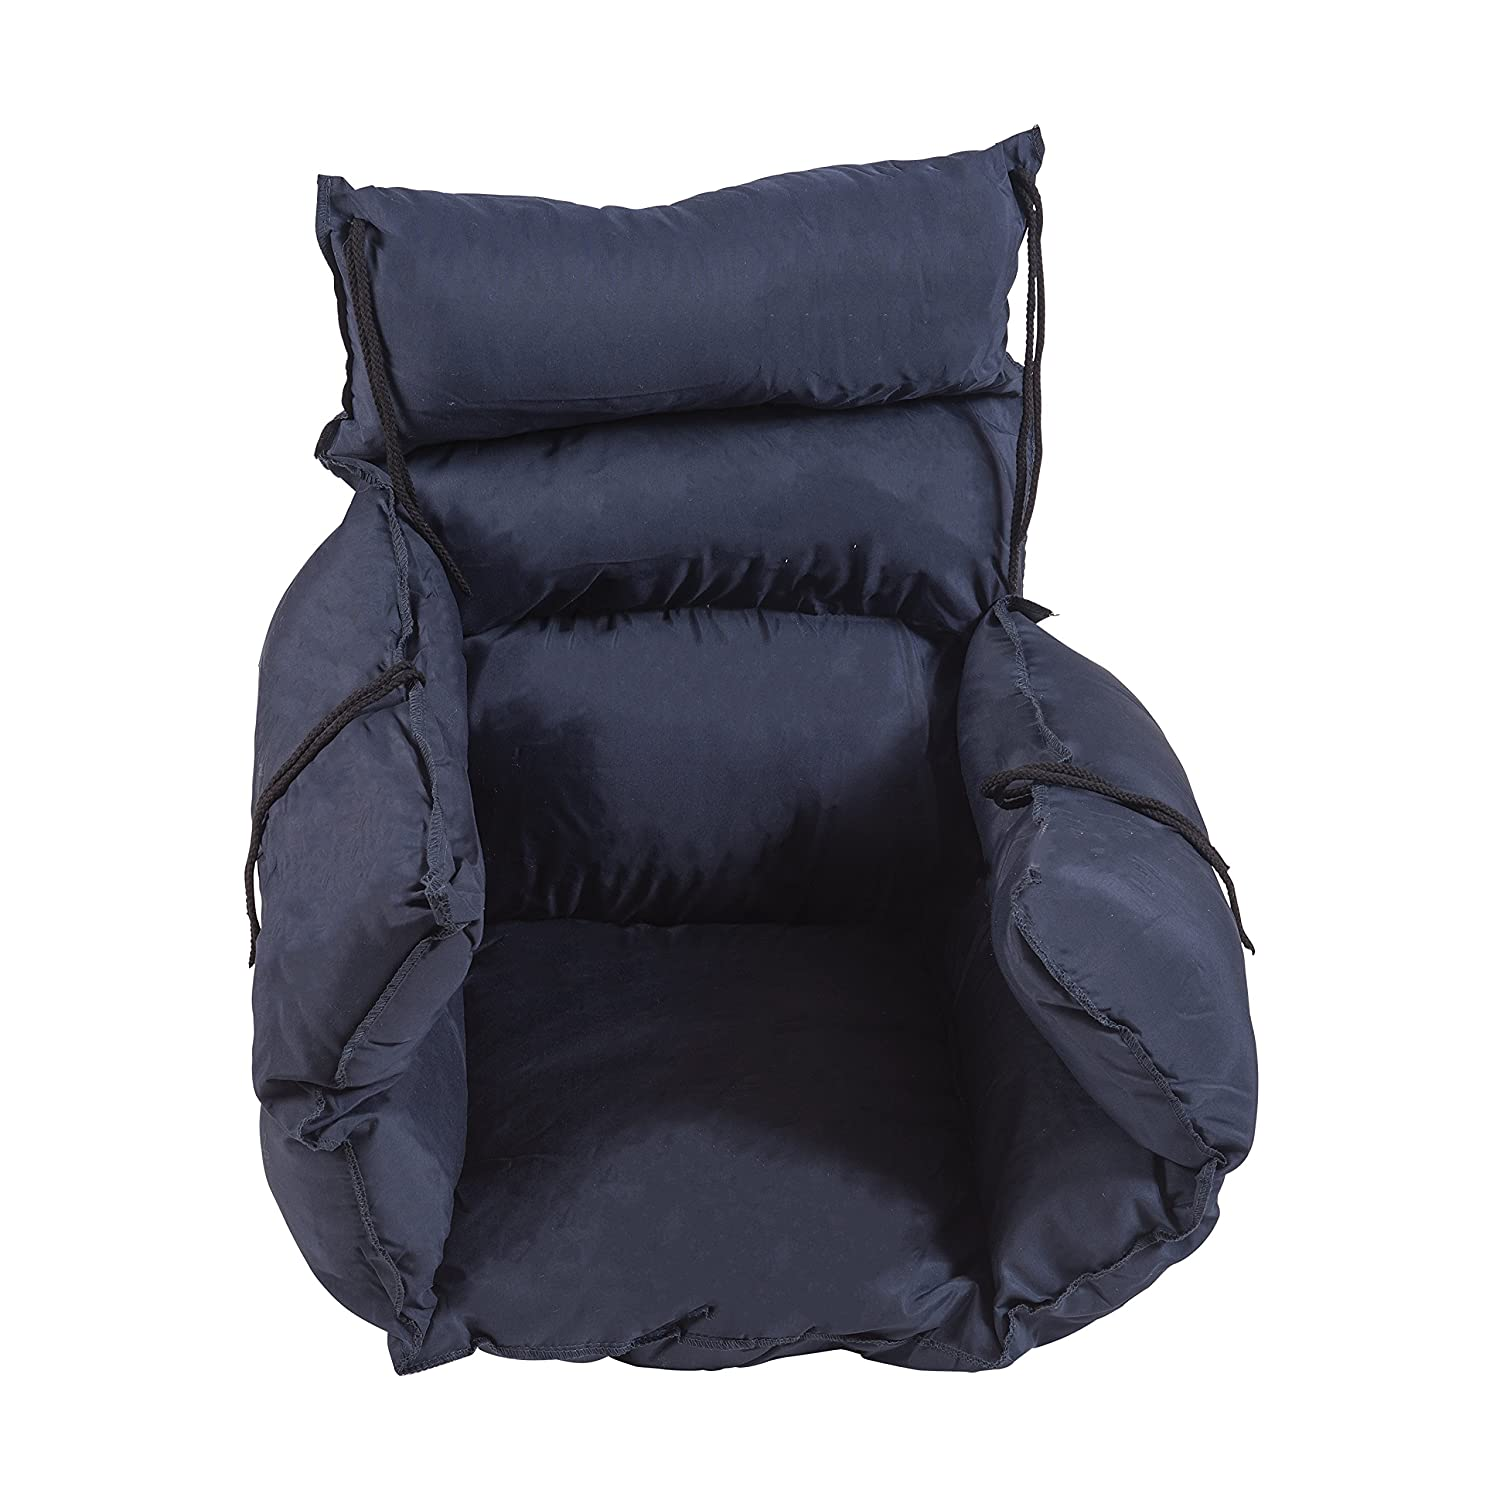 Pillow Chairs Dmi Comfort Chair Cushion Pillow For Your Chair Recliner